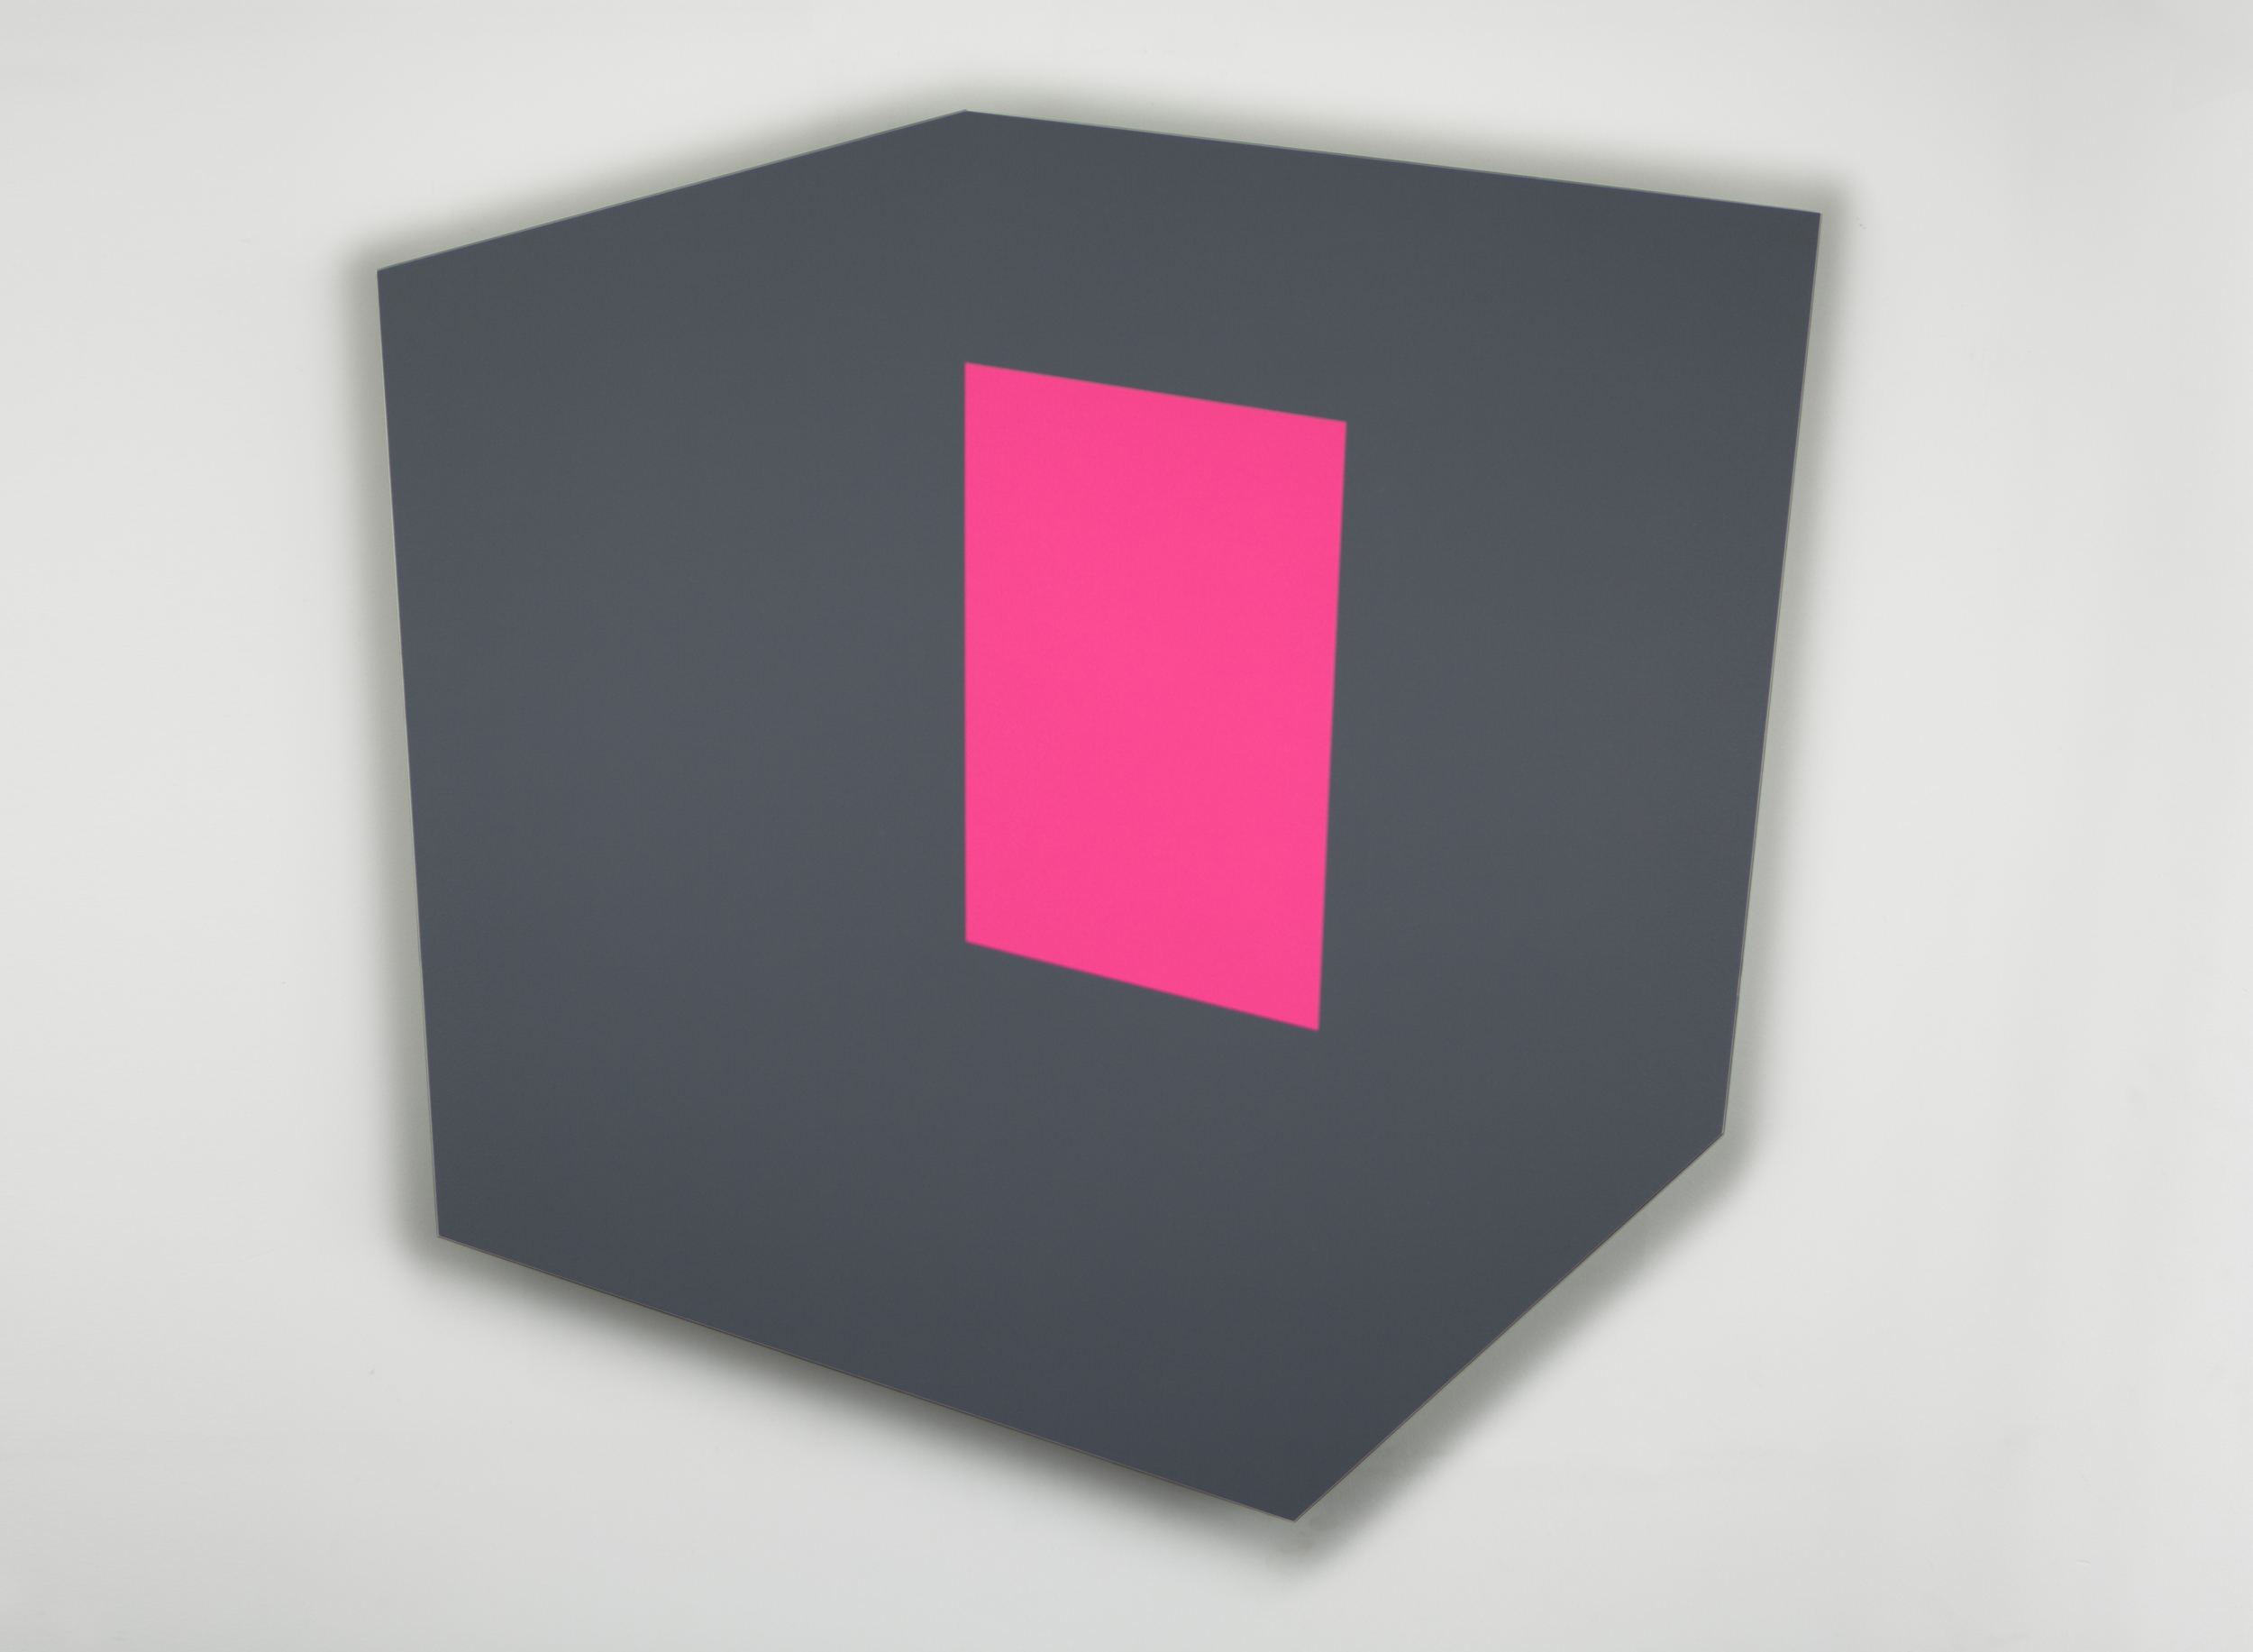 Pink Wall  2014 Acrylic on panel 36 x 37.5 in (92 x 95 cm)